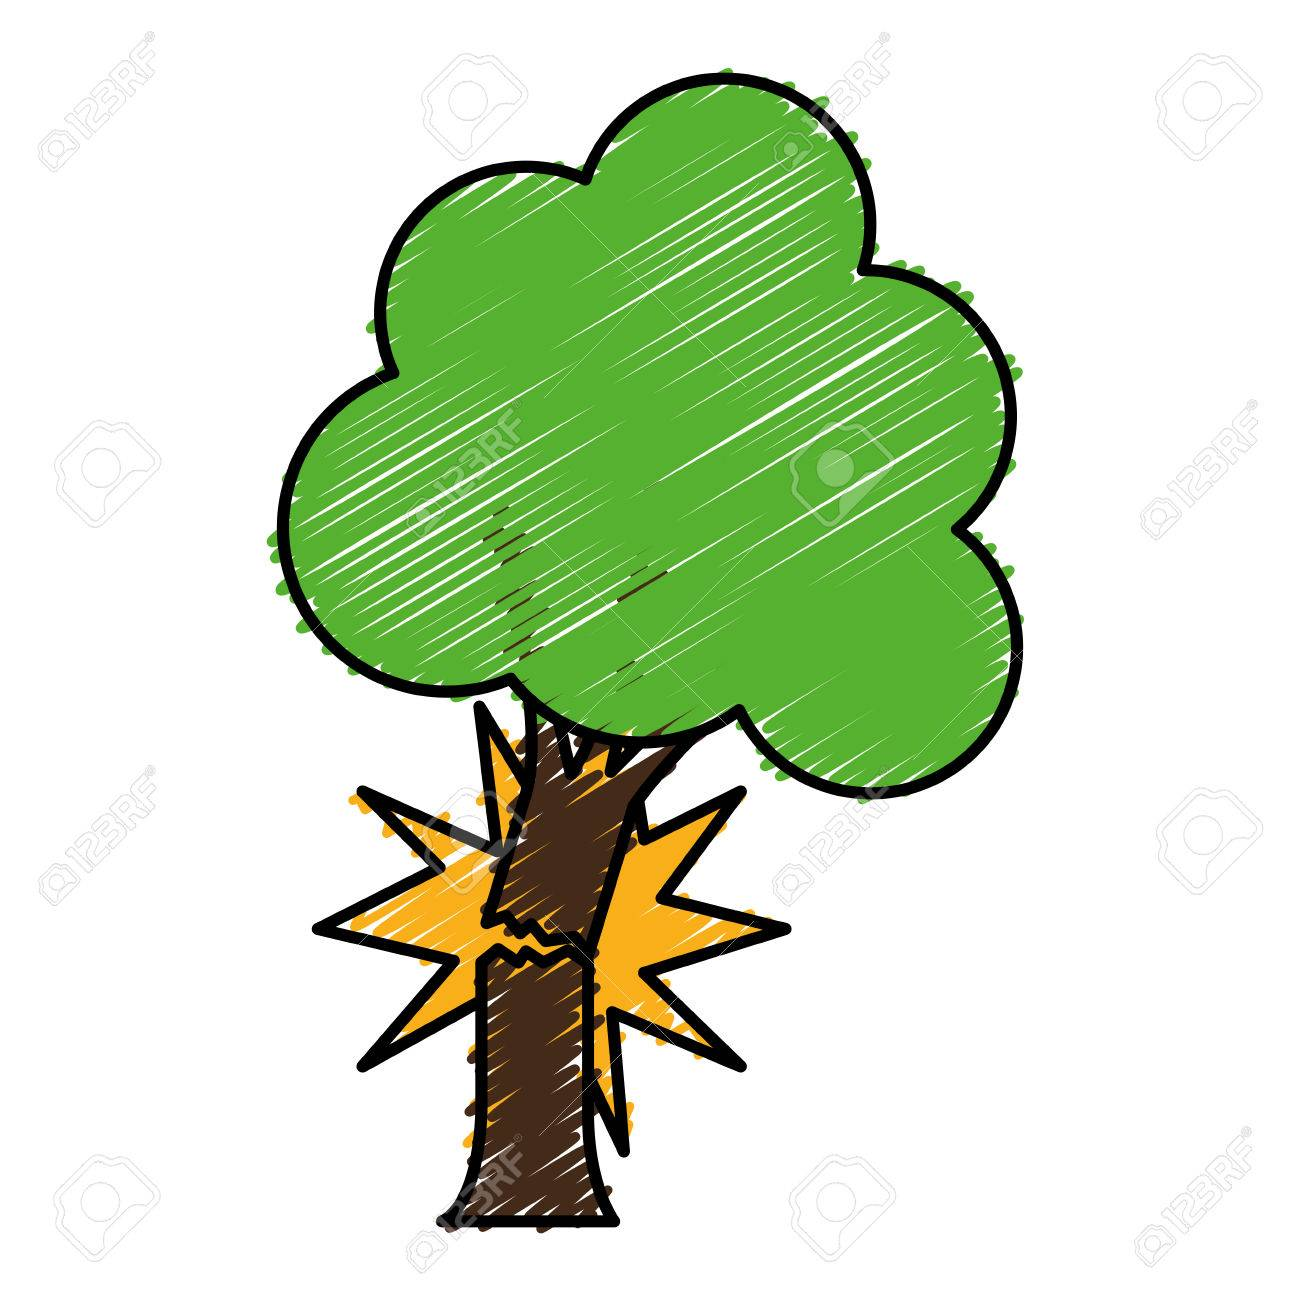 tree with broken trunk icon over white background. colorful design.